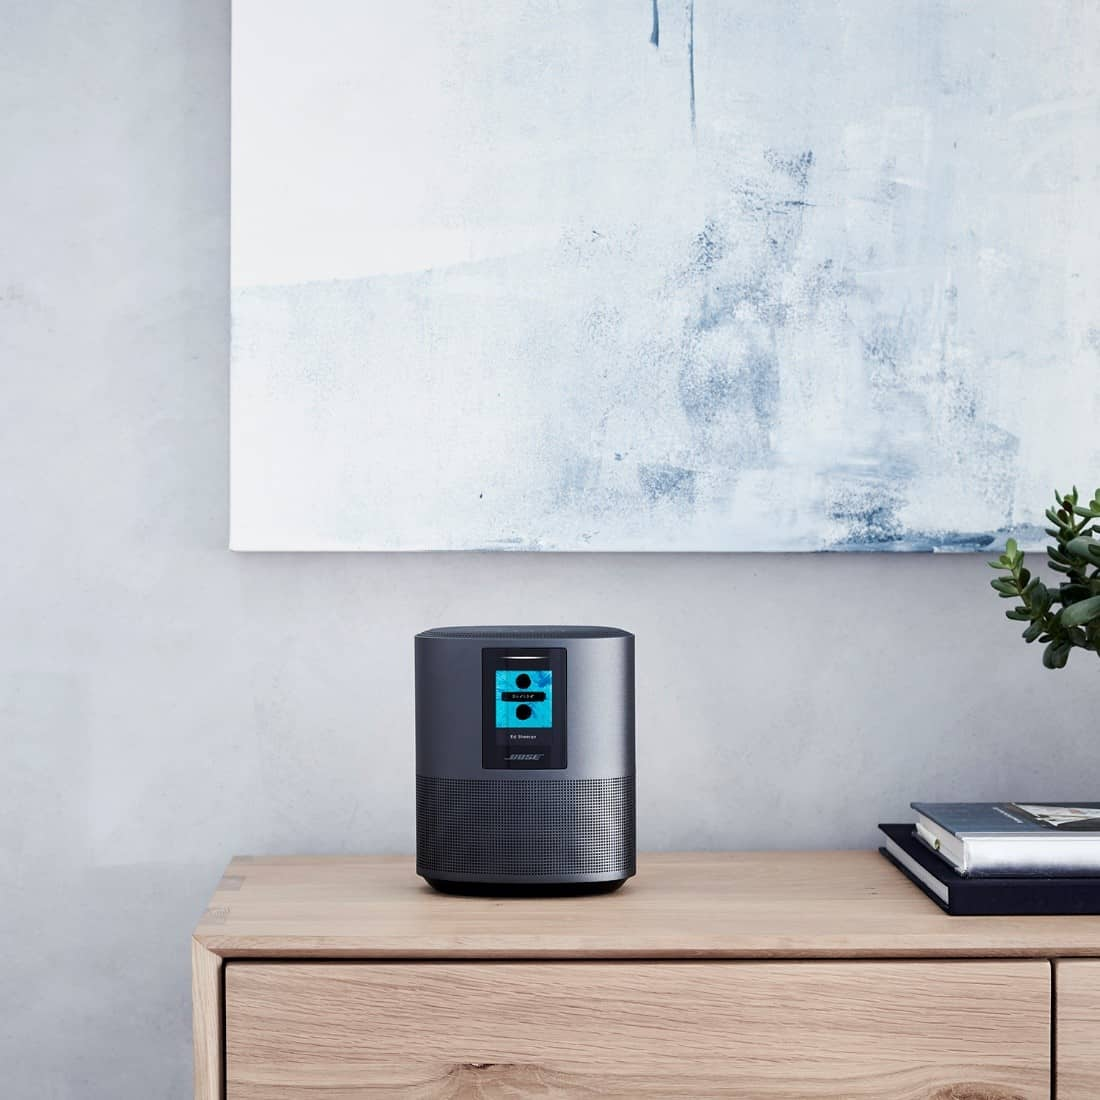 bose smart home speakers